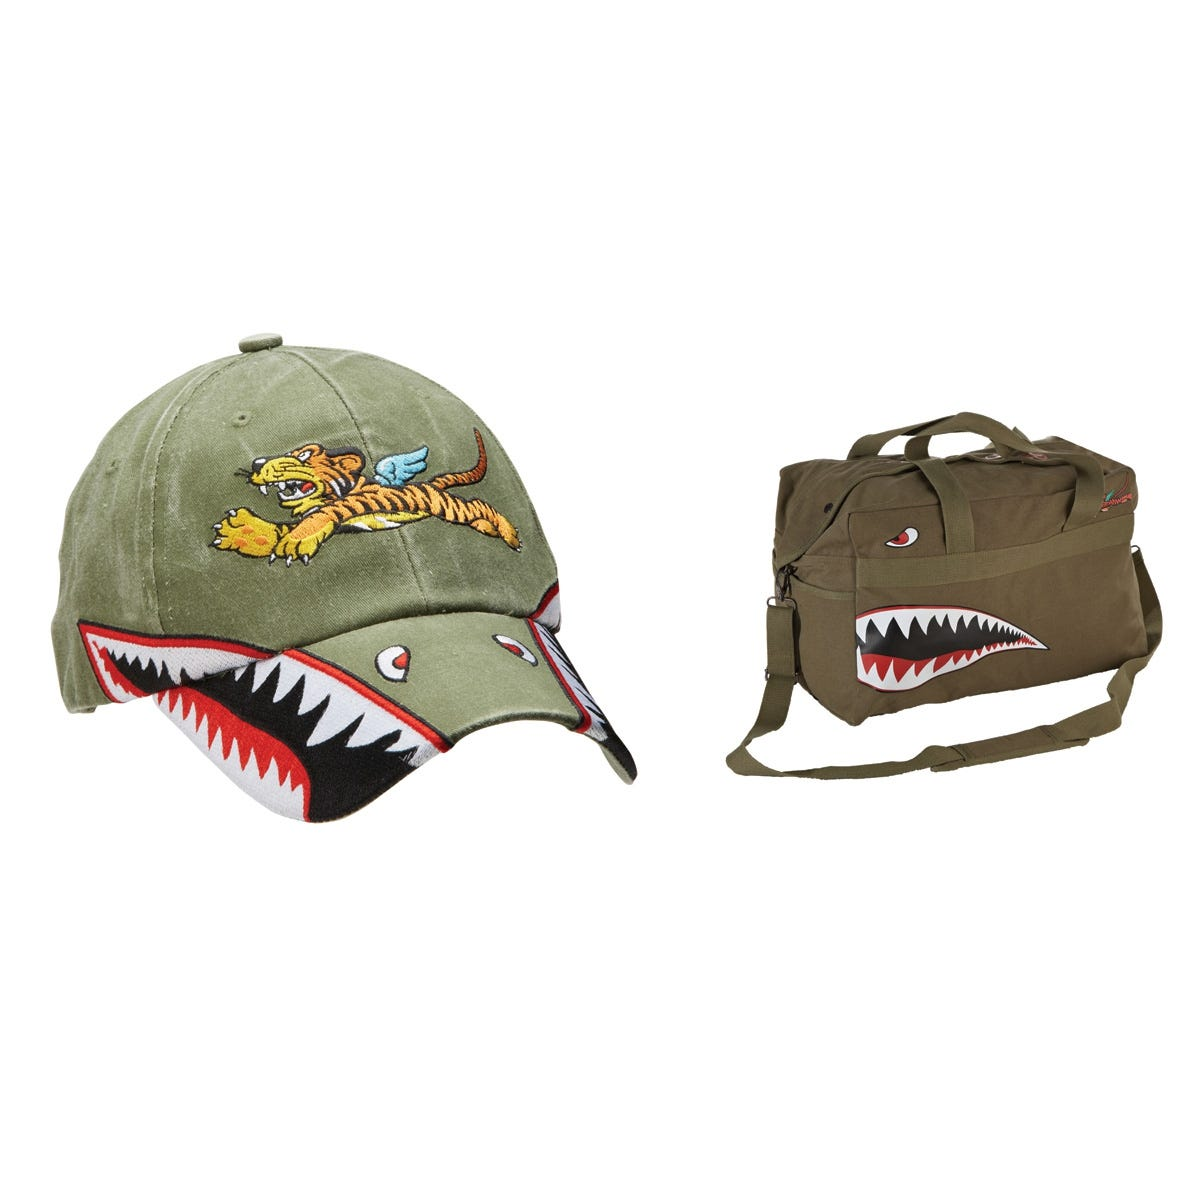 Flying Tigers bag